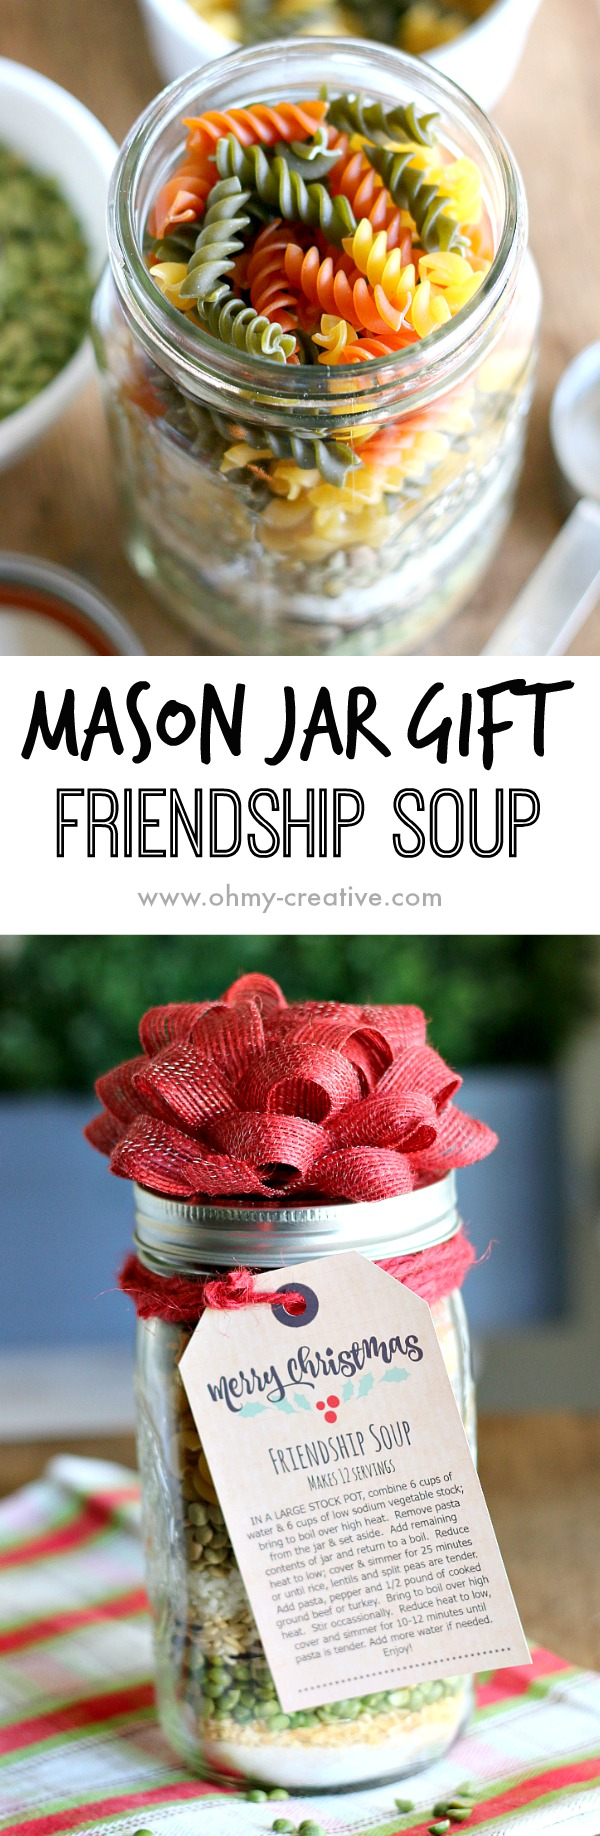 Friendship Soup In A Jar Gift - Oh My Creative